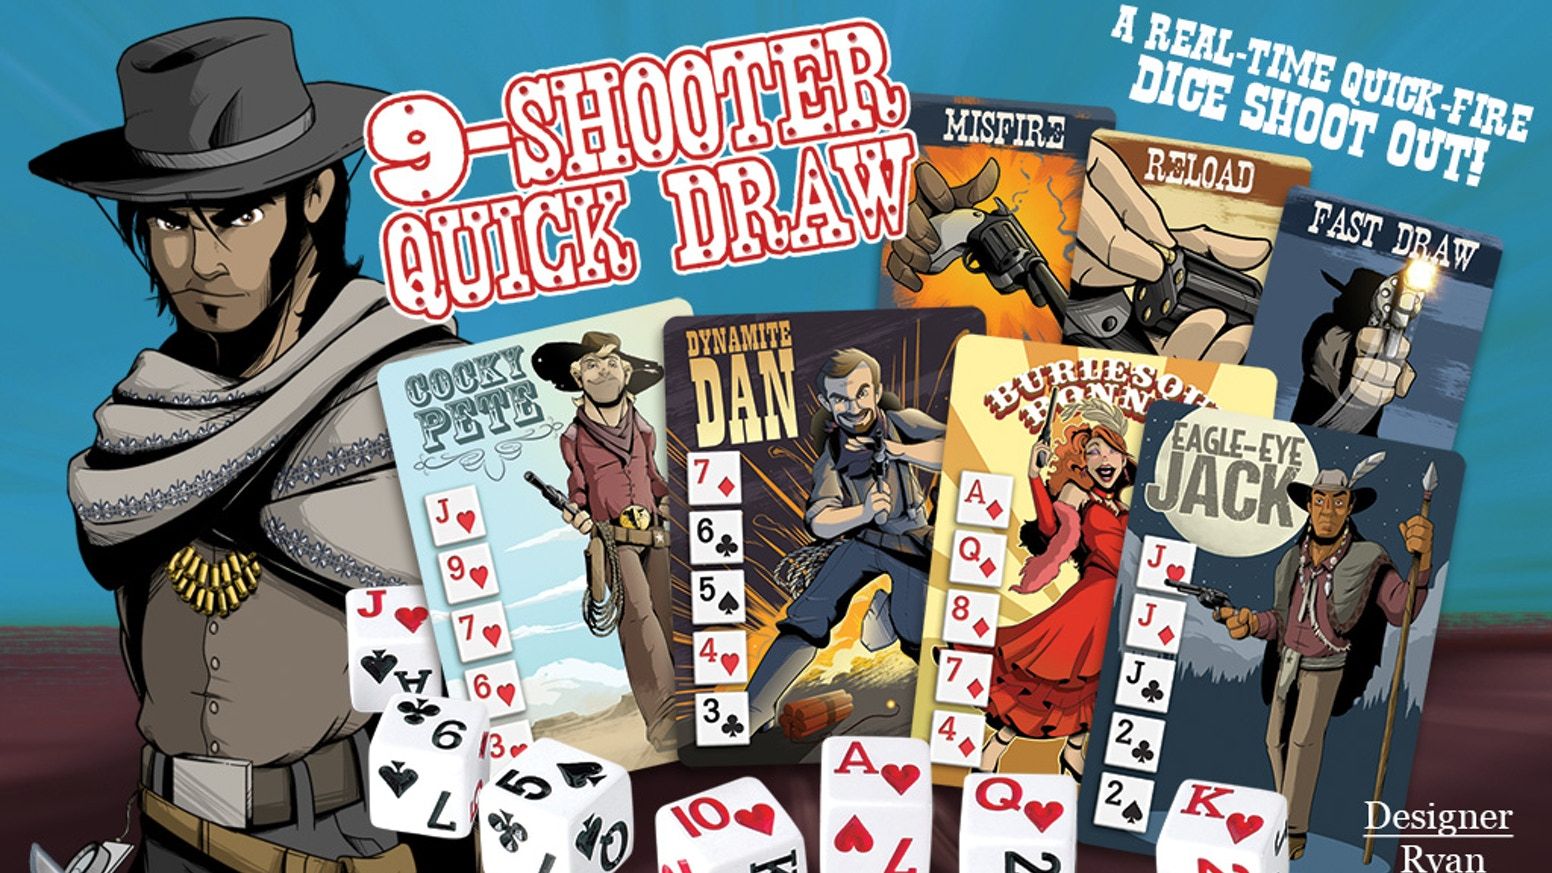 The dust clears, and there, leaner and meaner... stands 9-Shooter Quickdraw! The game of quick draw dice is back in town.